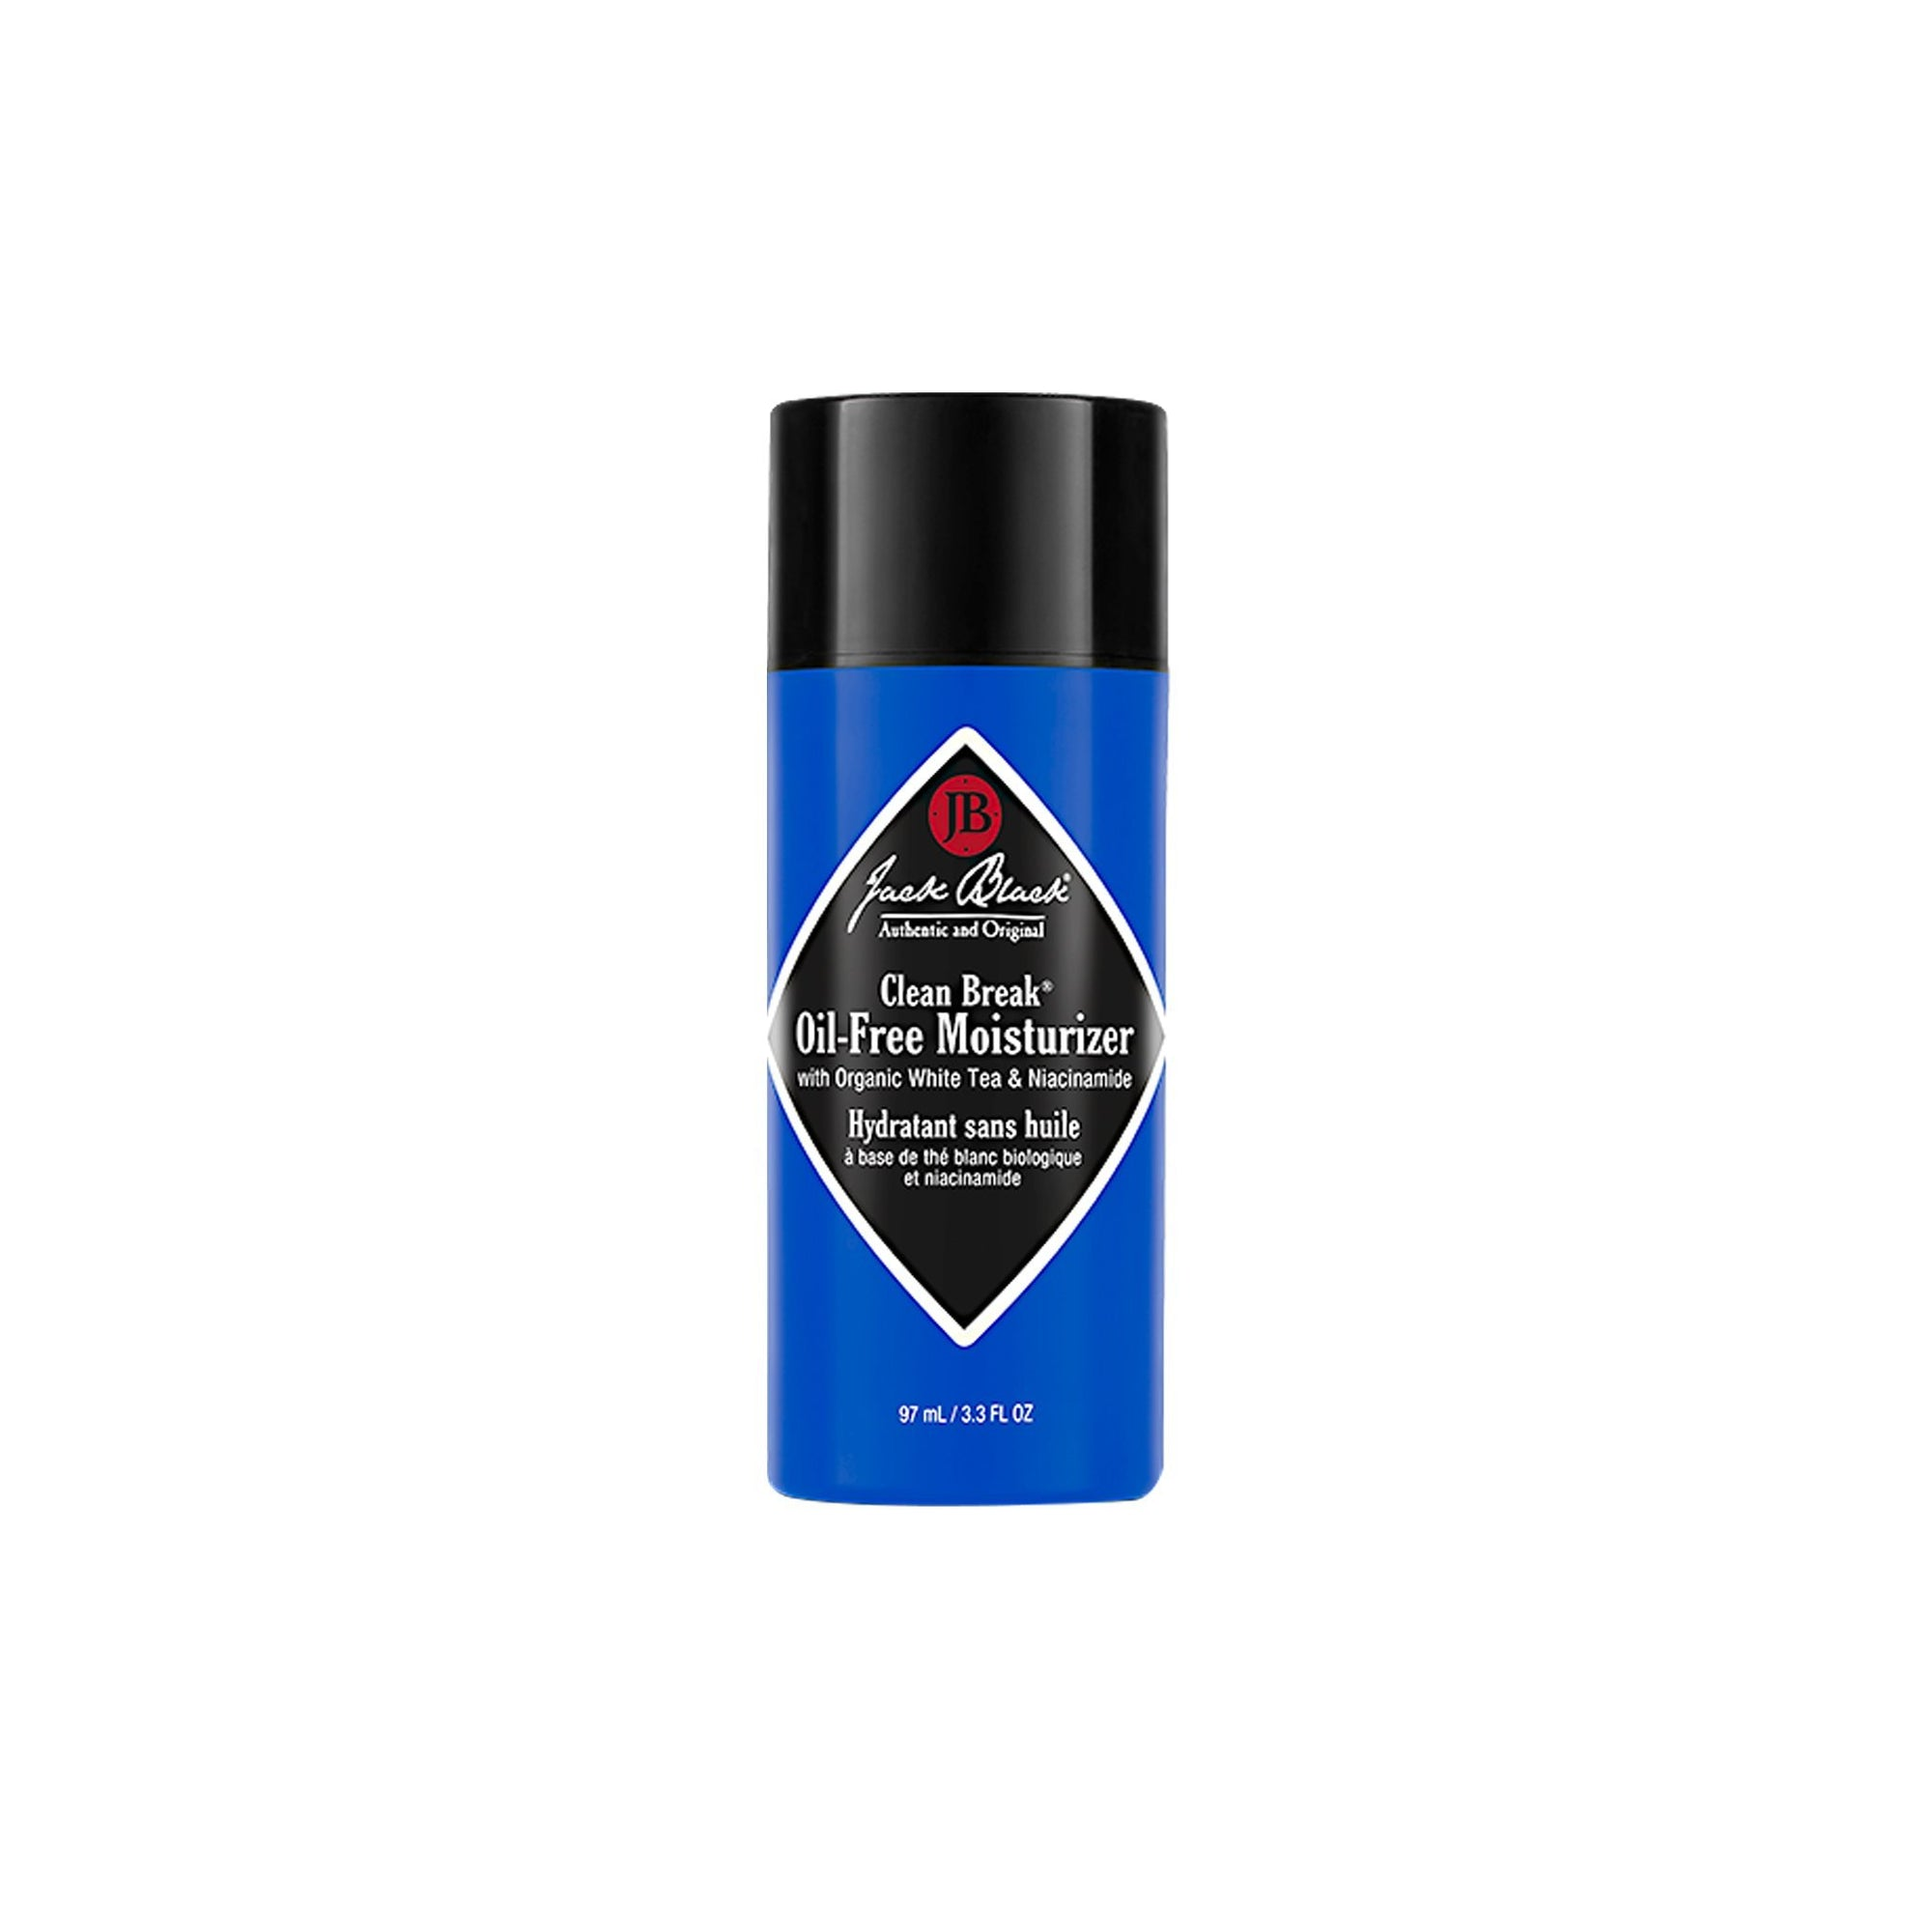 Jack Black Clean Break Oil-Free Moisturizer 98ml